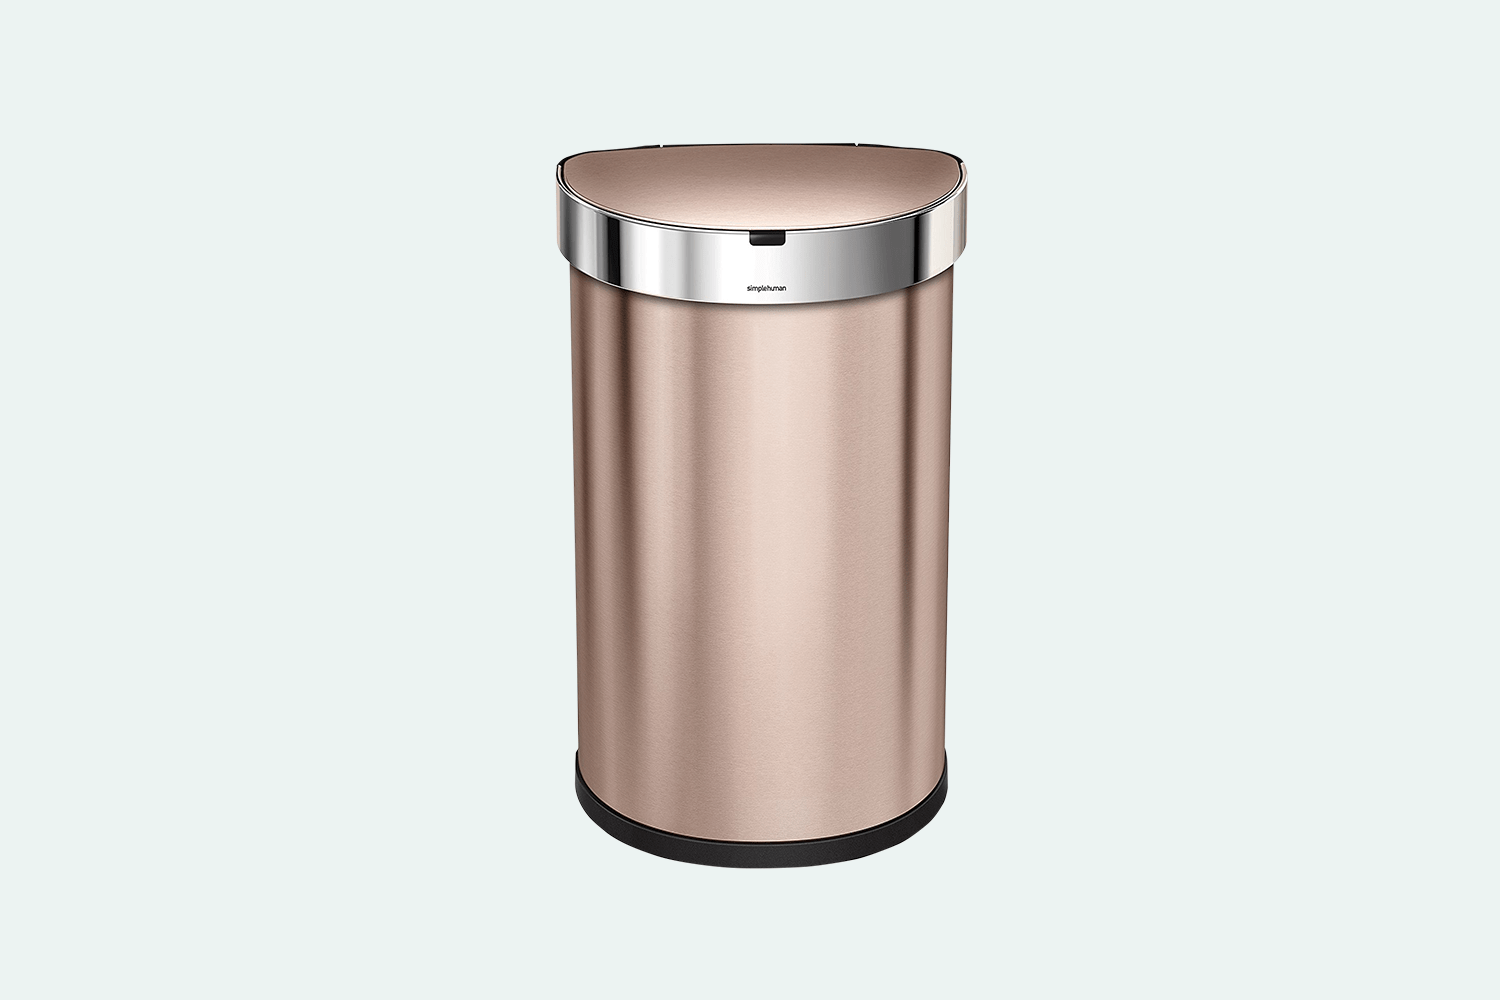 Copper Trash Can With Lid The Best Kitchen Trash Cans 2018 Annual Guide Apartment Therapy